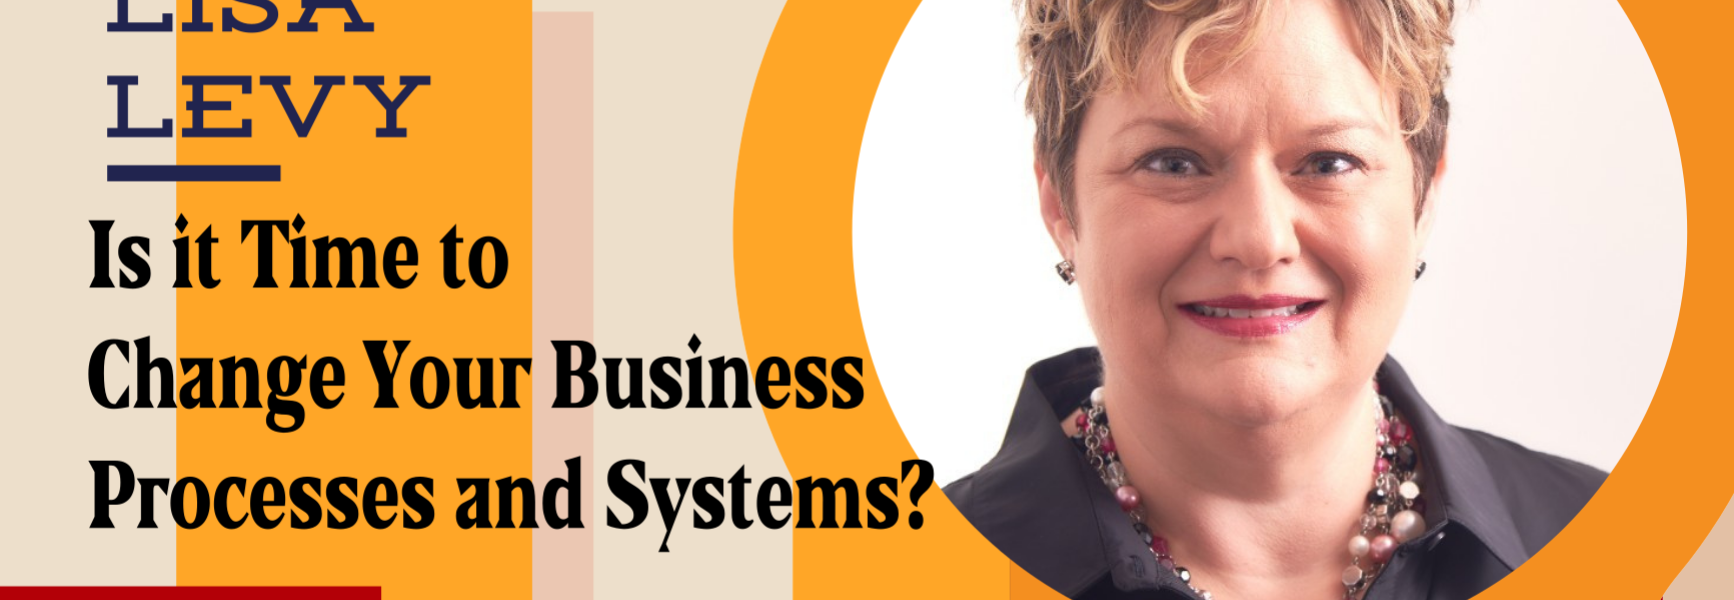 Is it Time to Change Your Business Processes and Systems? with Lisa Levy